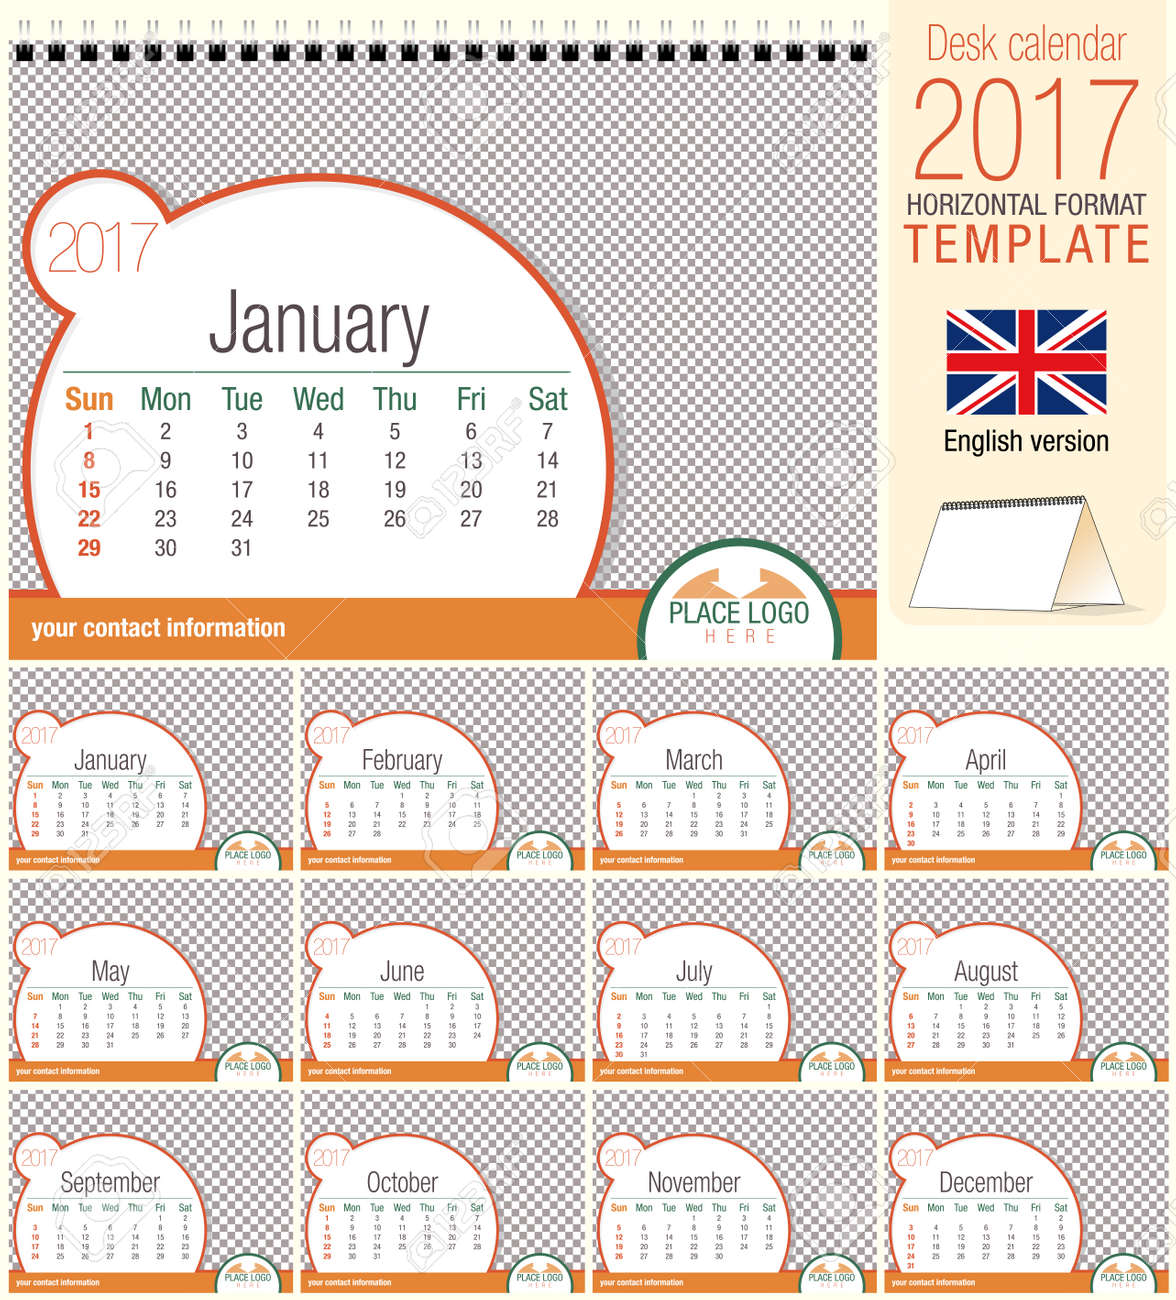 desk triangle calendar 2017 template size 210mm x 150mm format